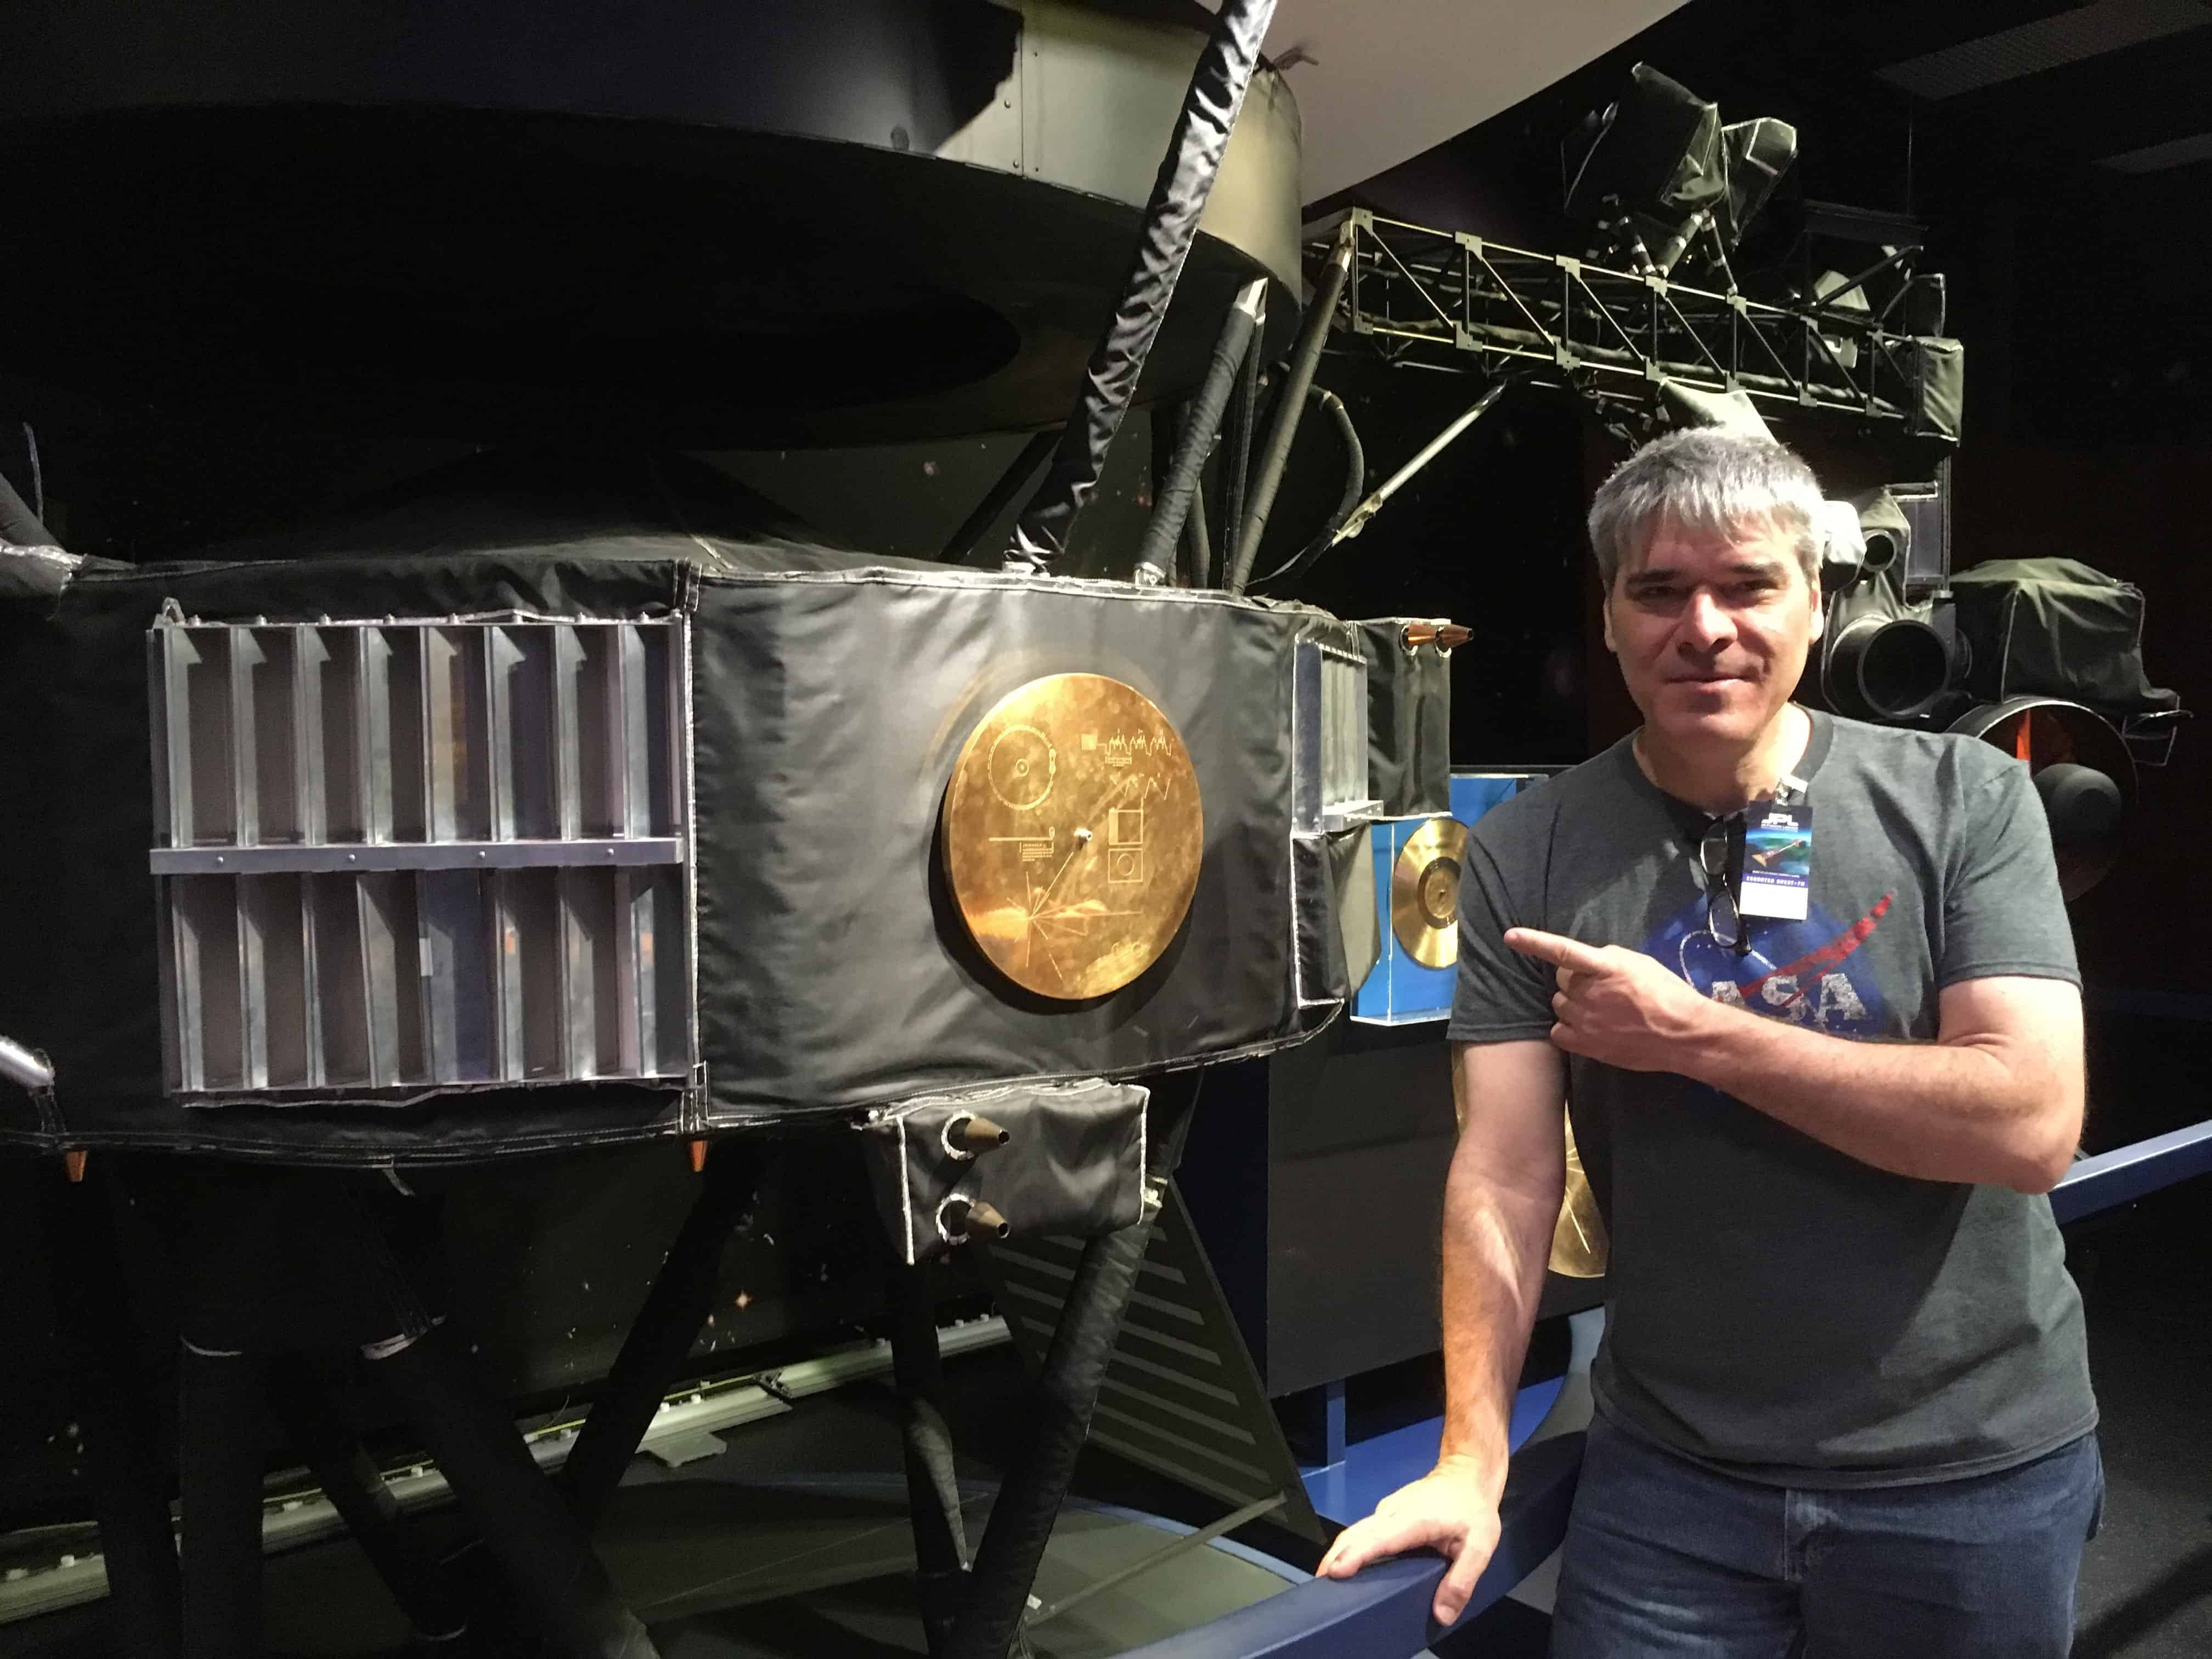 Reaching for the stars: Costa Ricans' role in space exploration